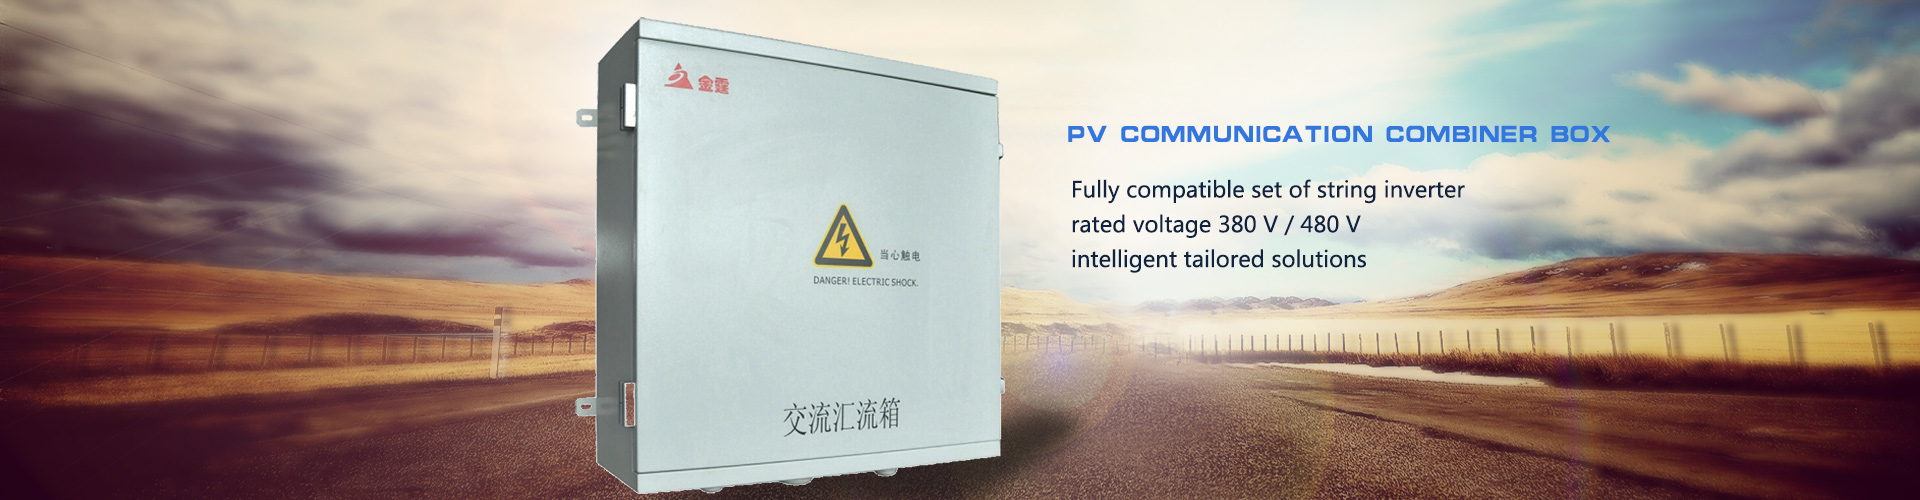 PV communication combiner box